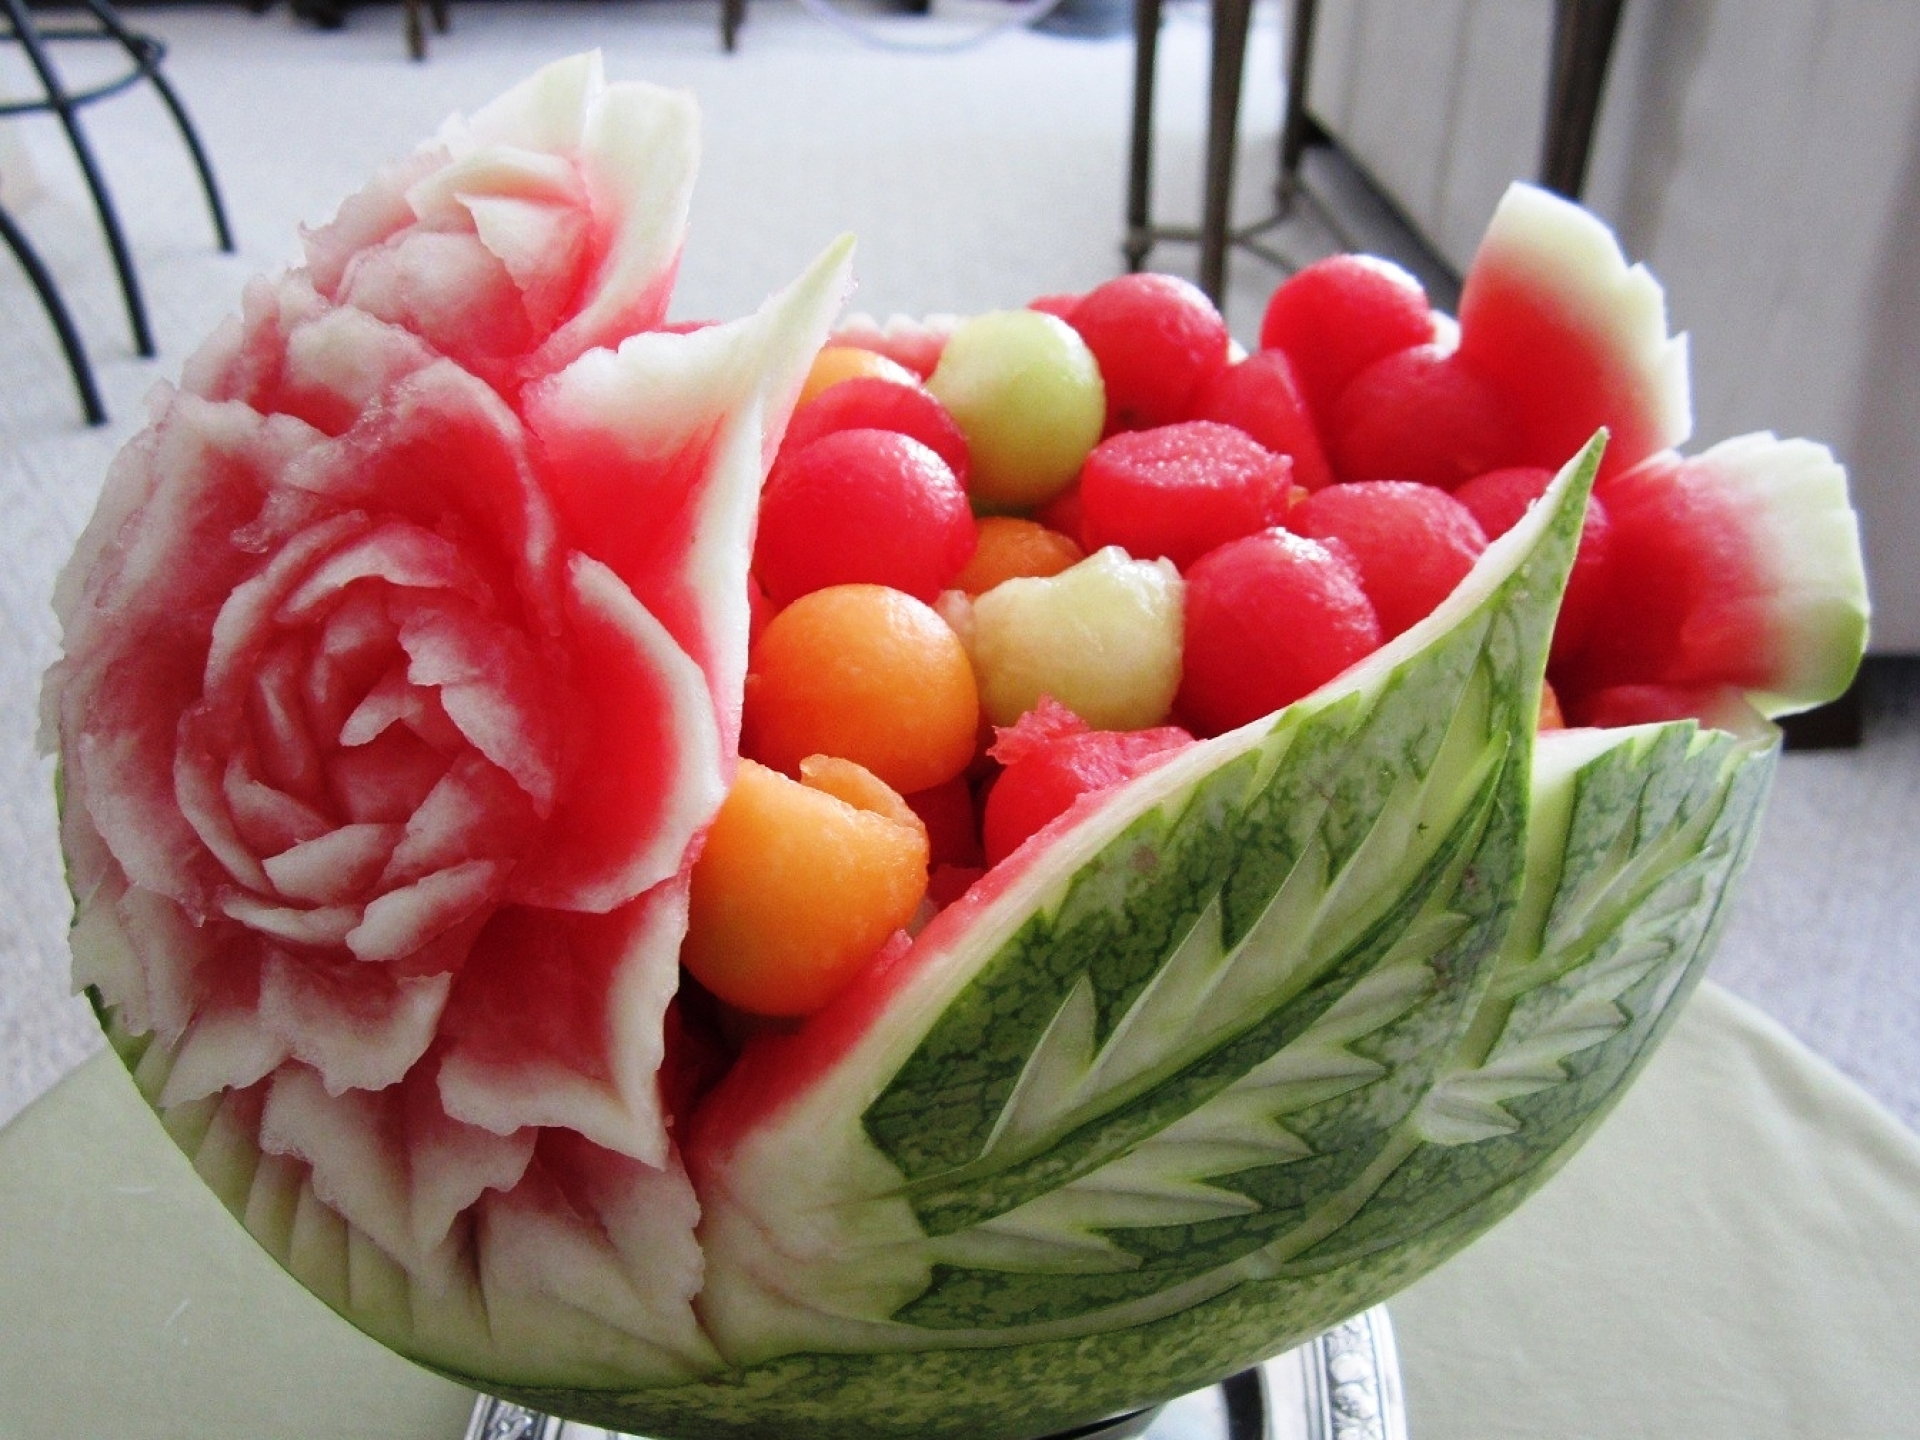 Awesome Watermelons Hd Wallpapers